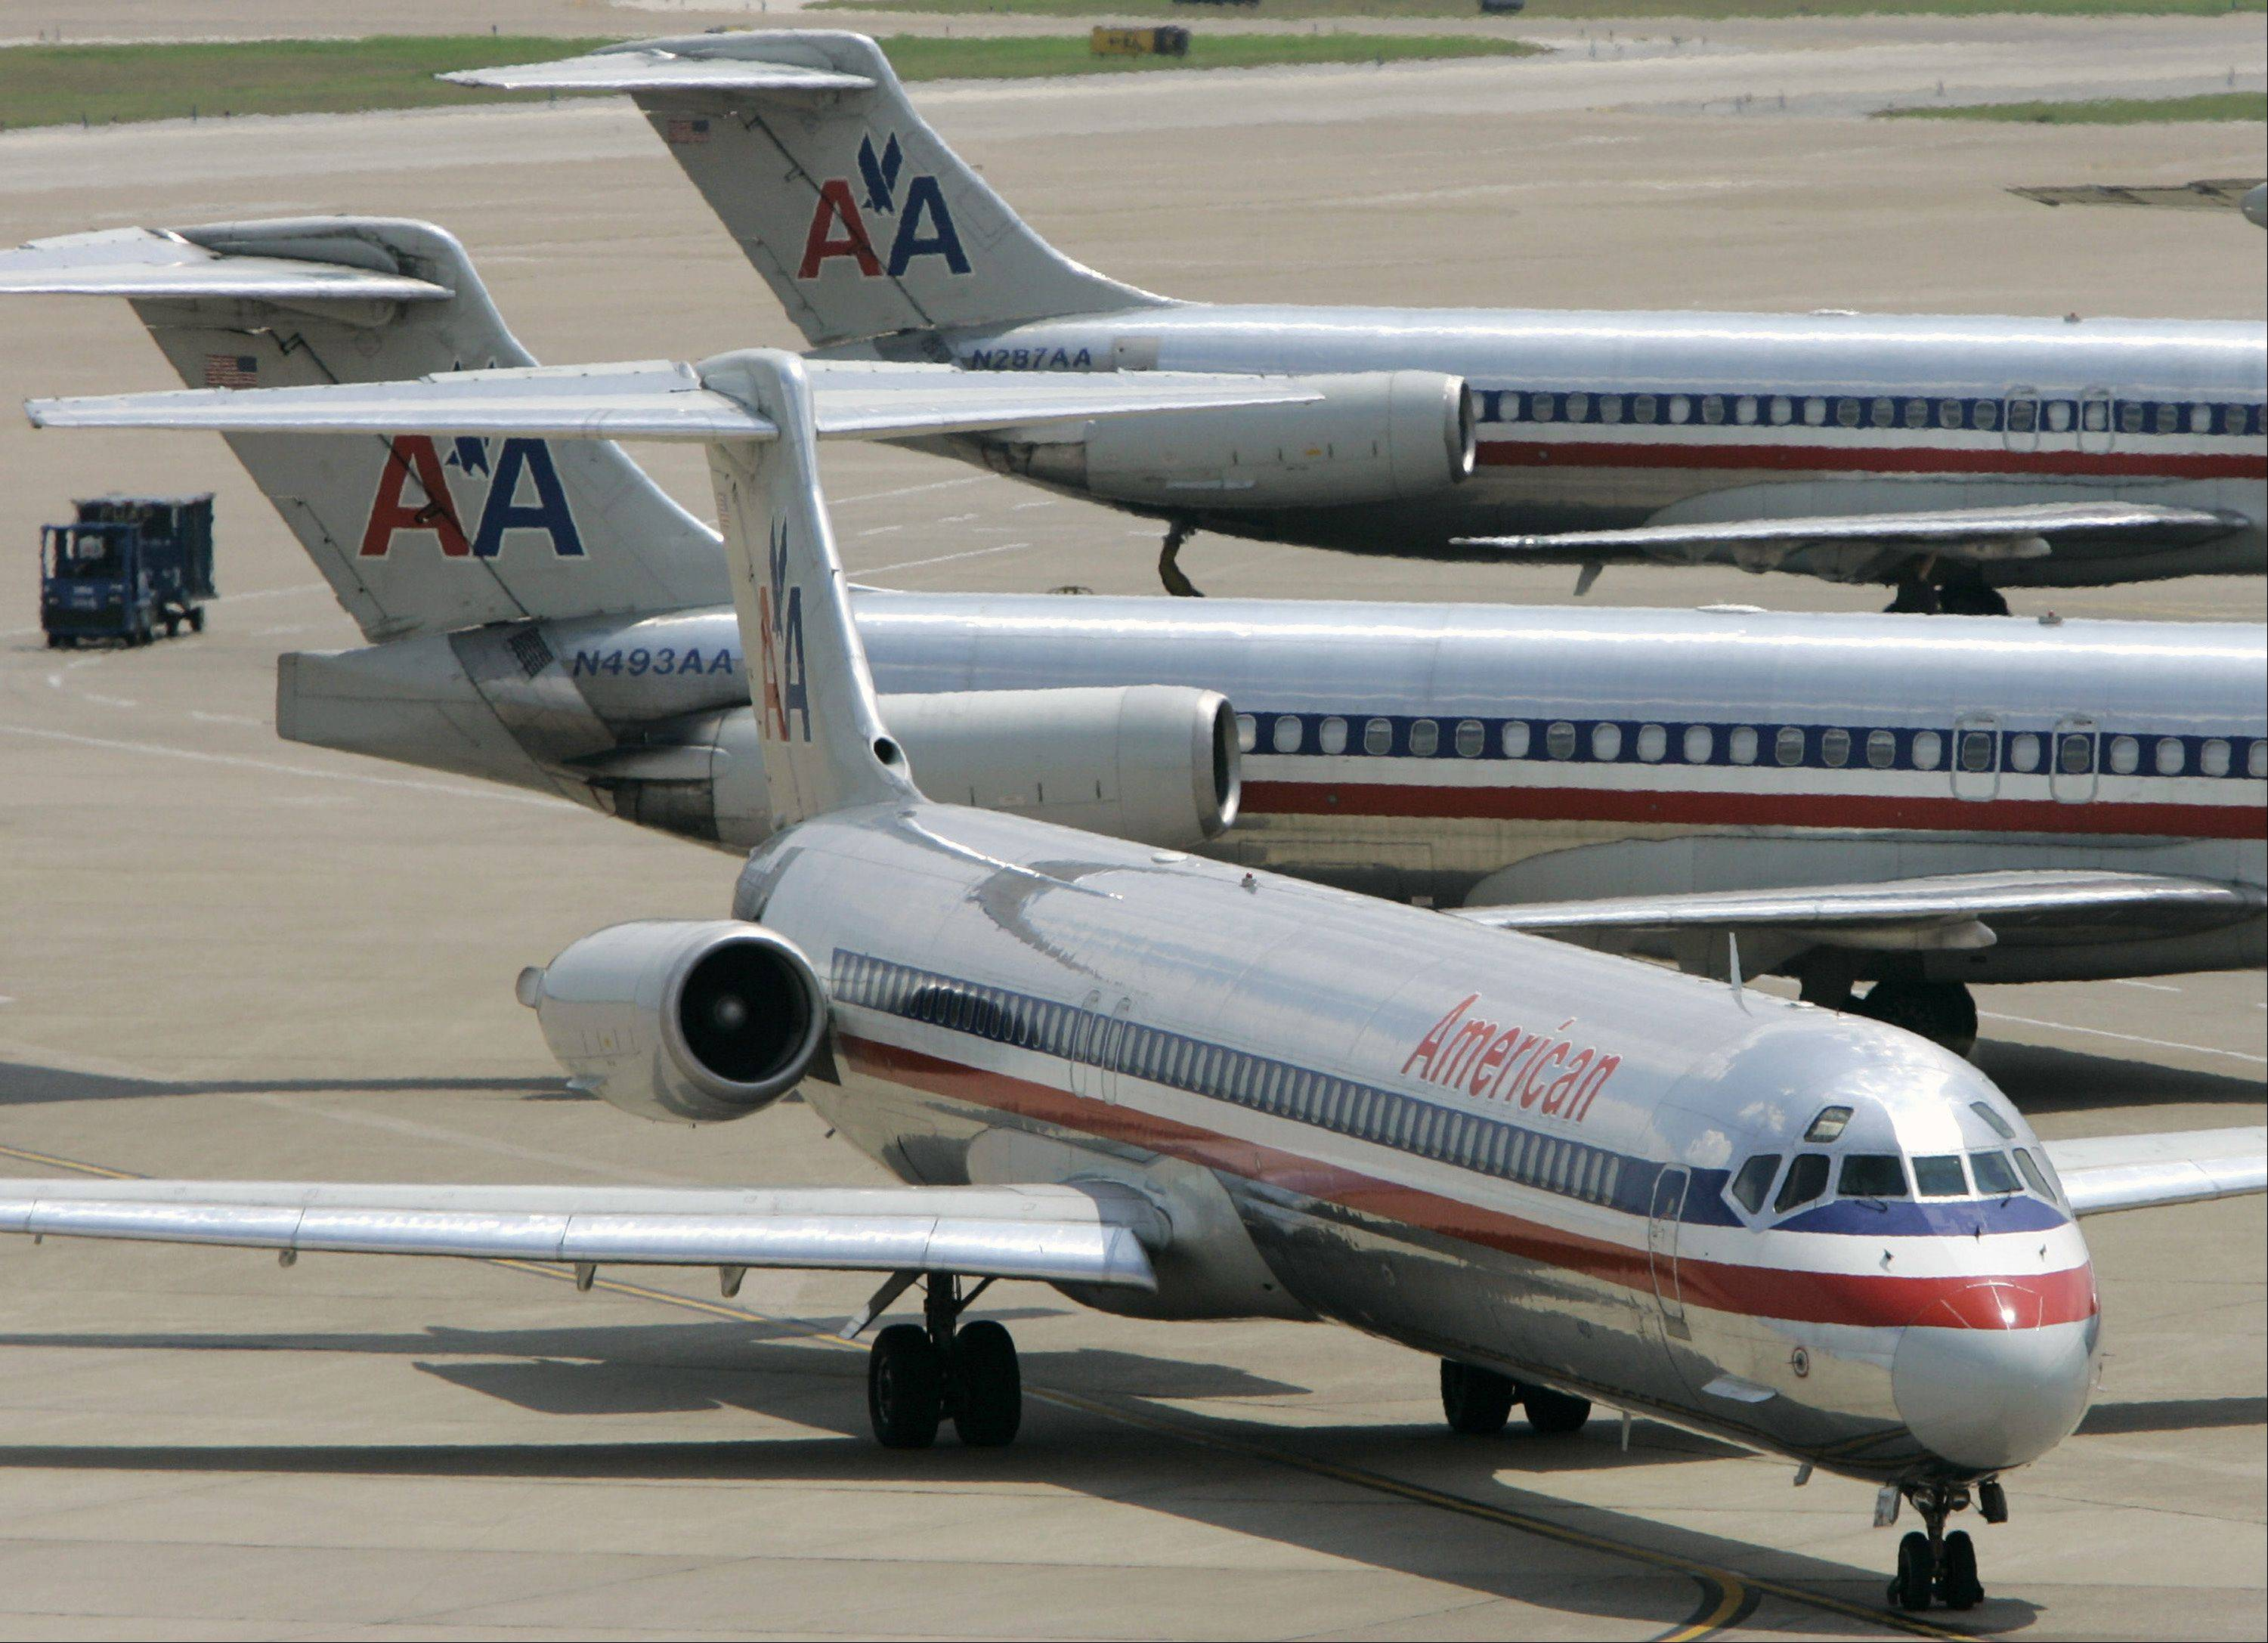 @$ID/[No paragraph style]:ASSOCIATED PRESS The long-anticipated merger between American Airlines and US Airways, apparently has hit another snag.